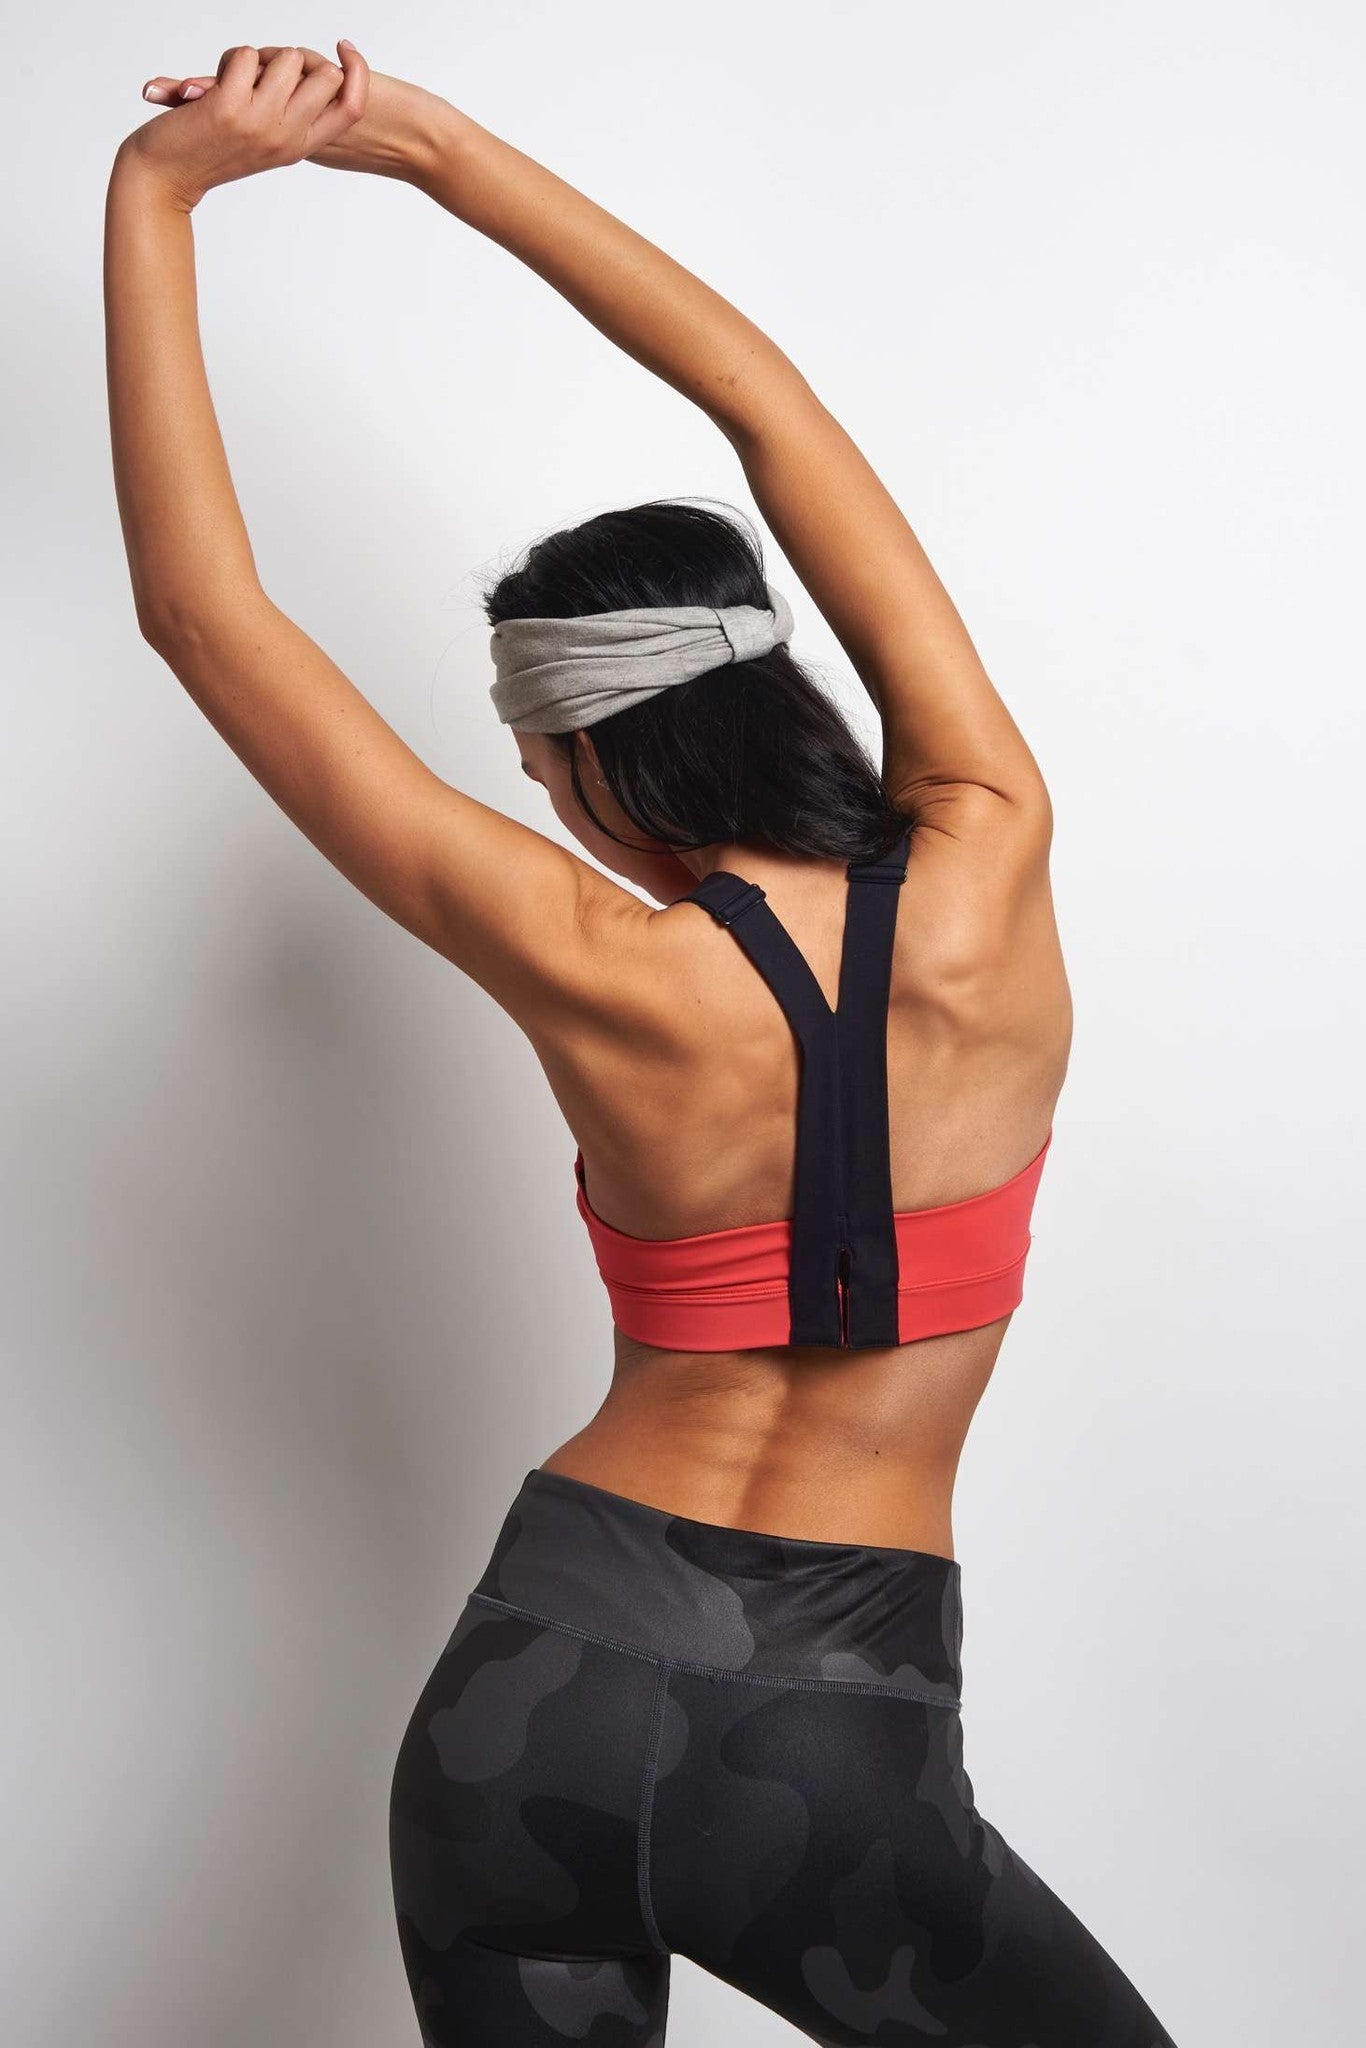 ADIDAS CMMTTD Chill Bra - CorePink image 3 - The Sports Edit